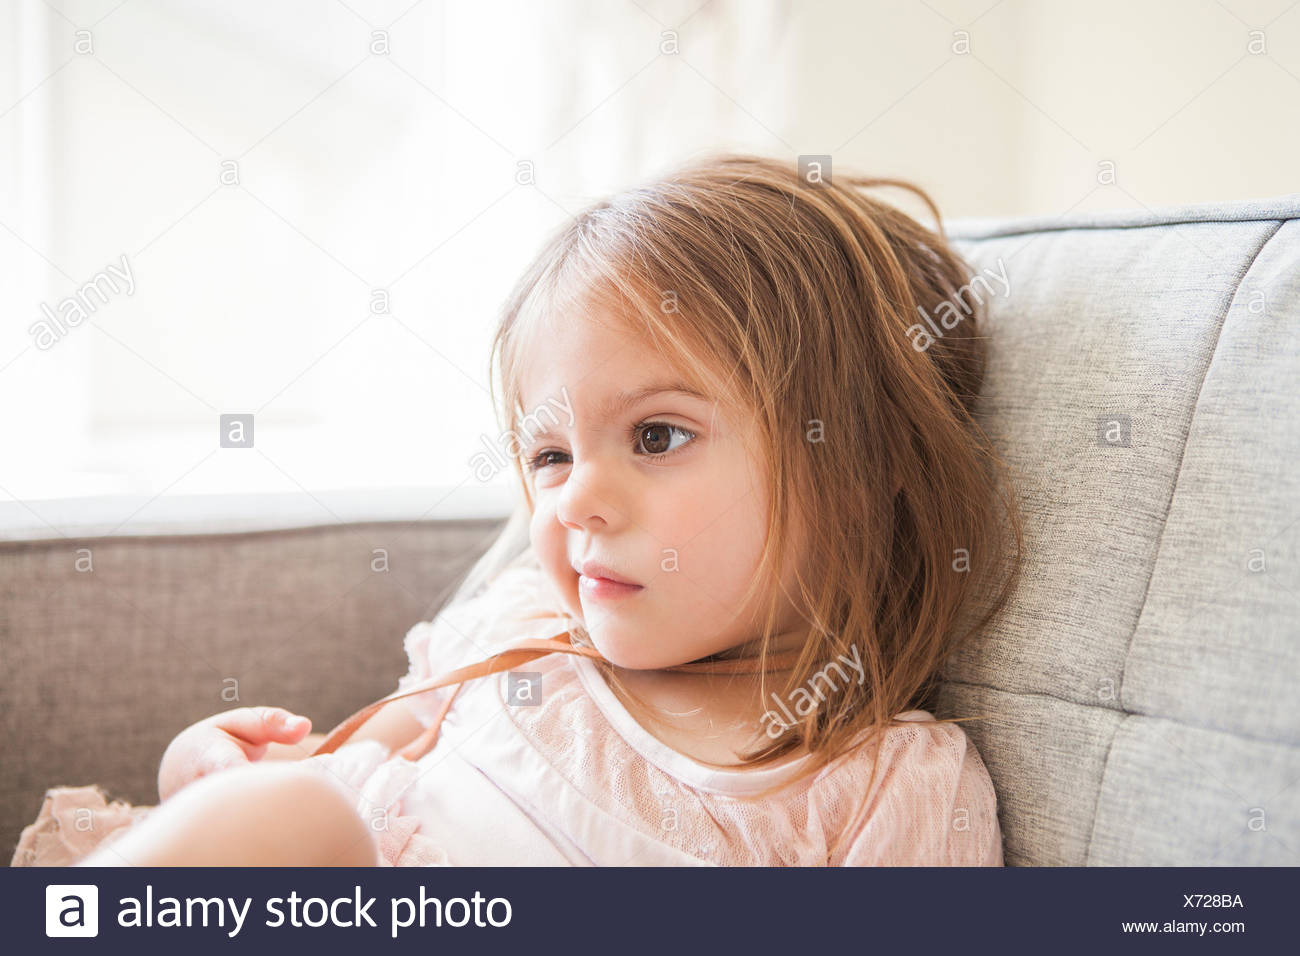 Toddler girl making a face on sofa - Stock Image